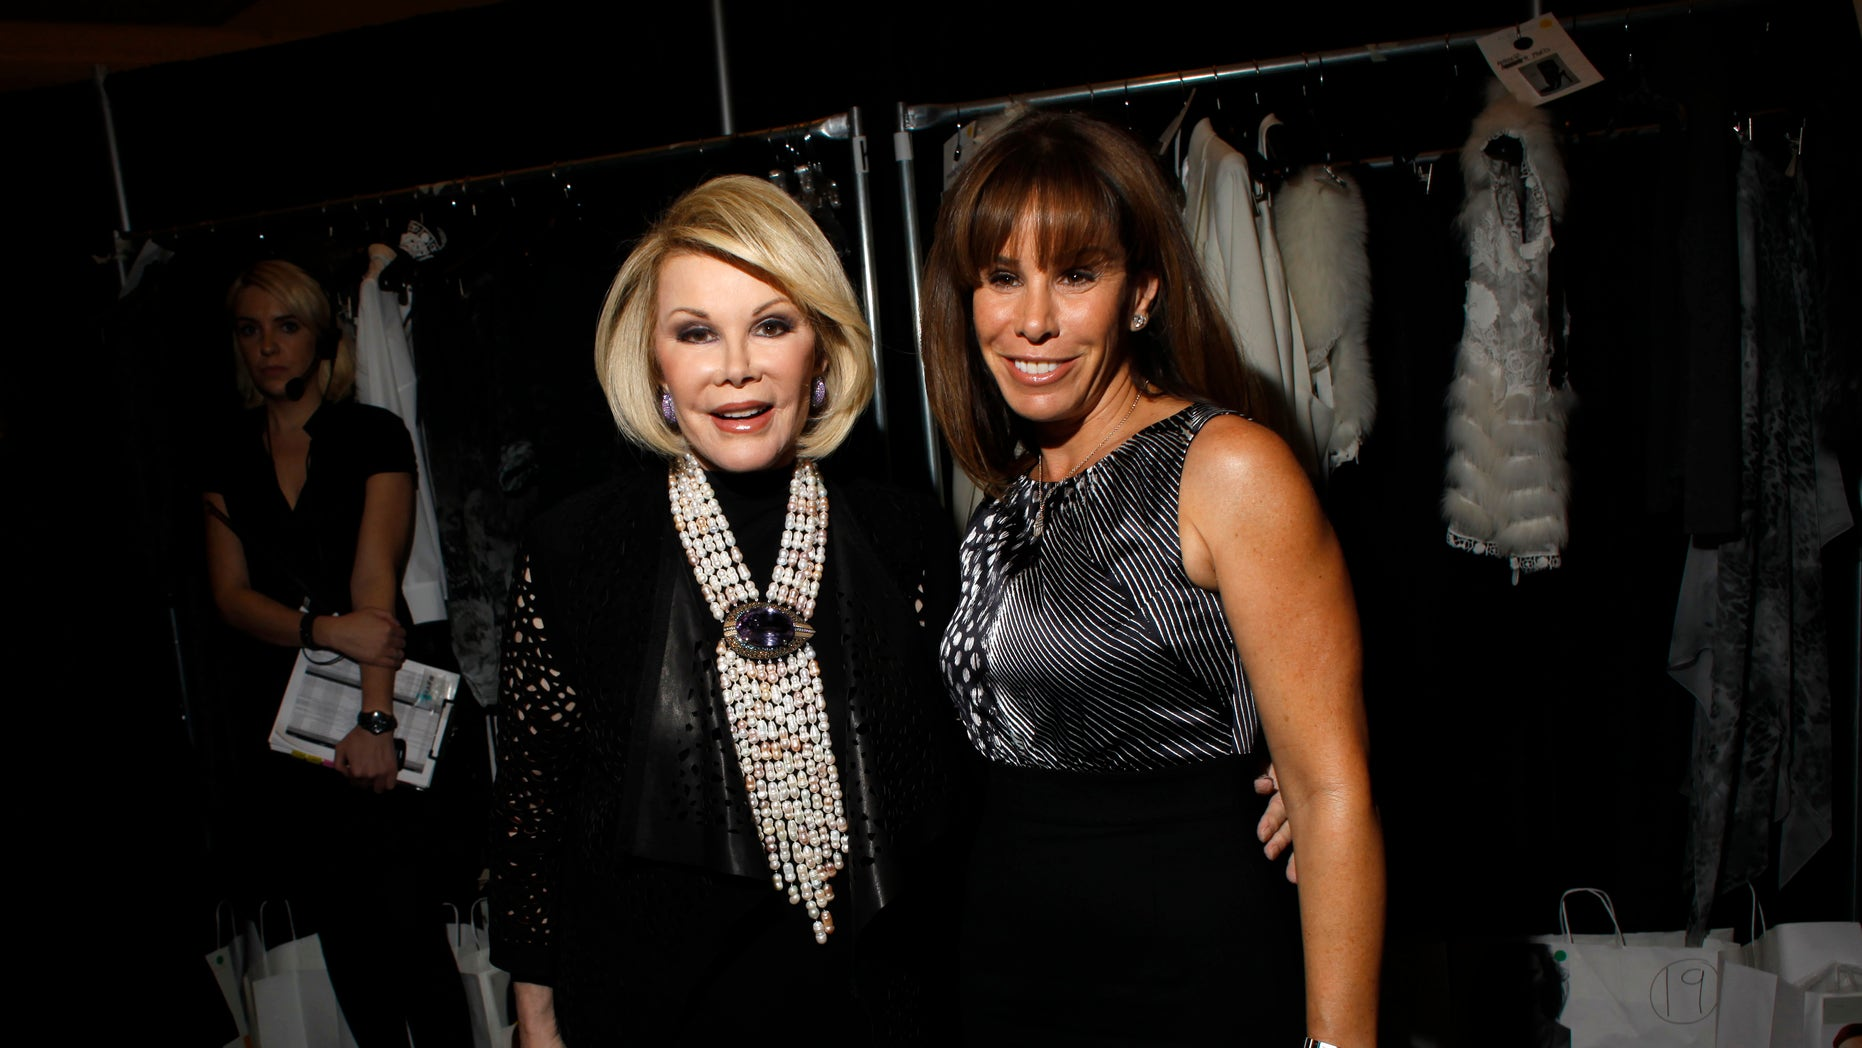 February 16, 20111. Comedienne Joan Rivers (L) and TV personality Melissa Rivers attend the Elie Tahari Fall/Winter 2011 collection show during New York Fashion Week.